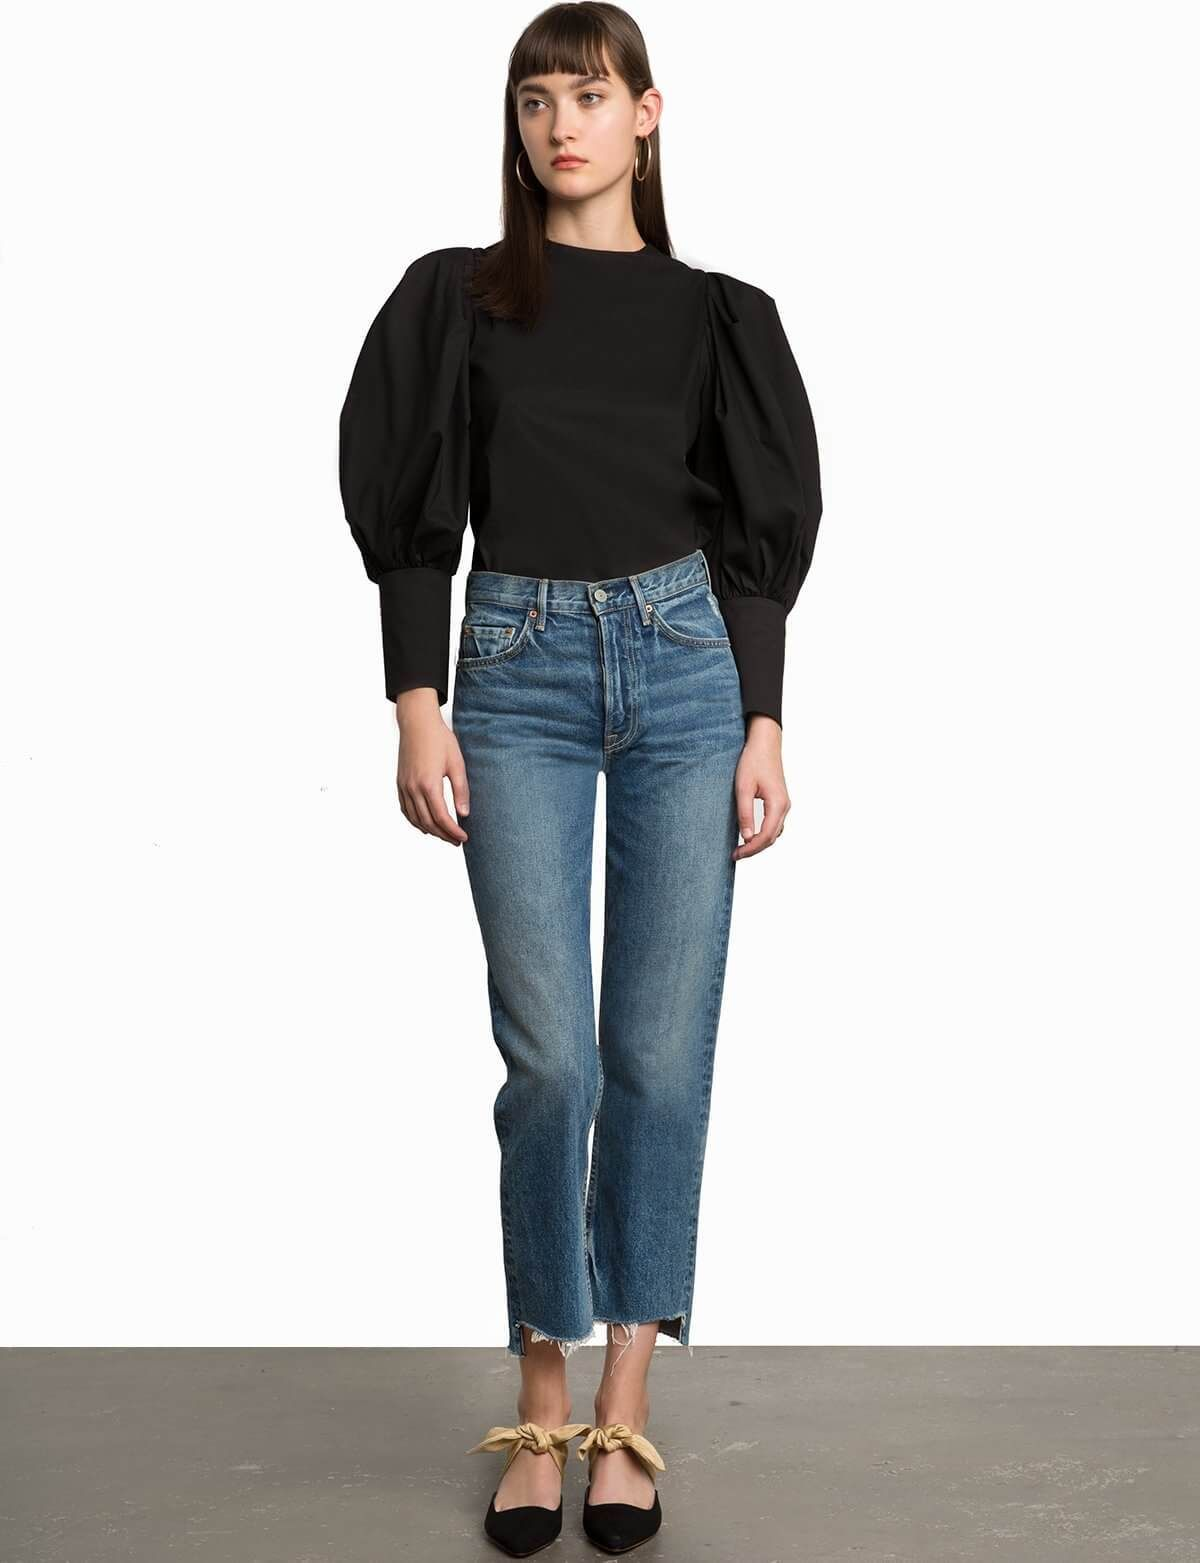 Taylor black puffy sleeve button shirt in fall